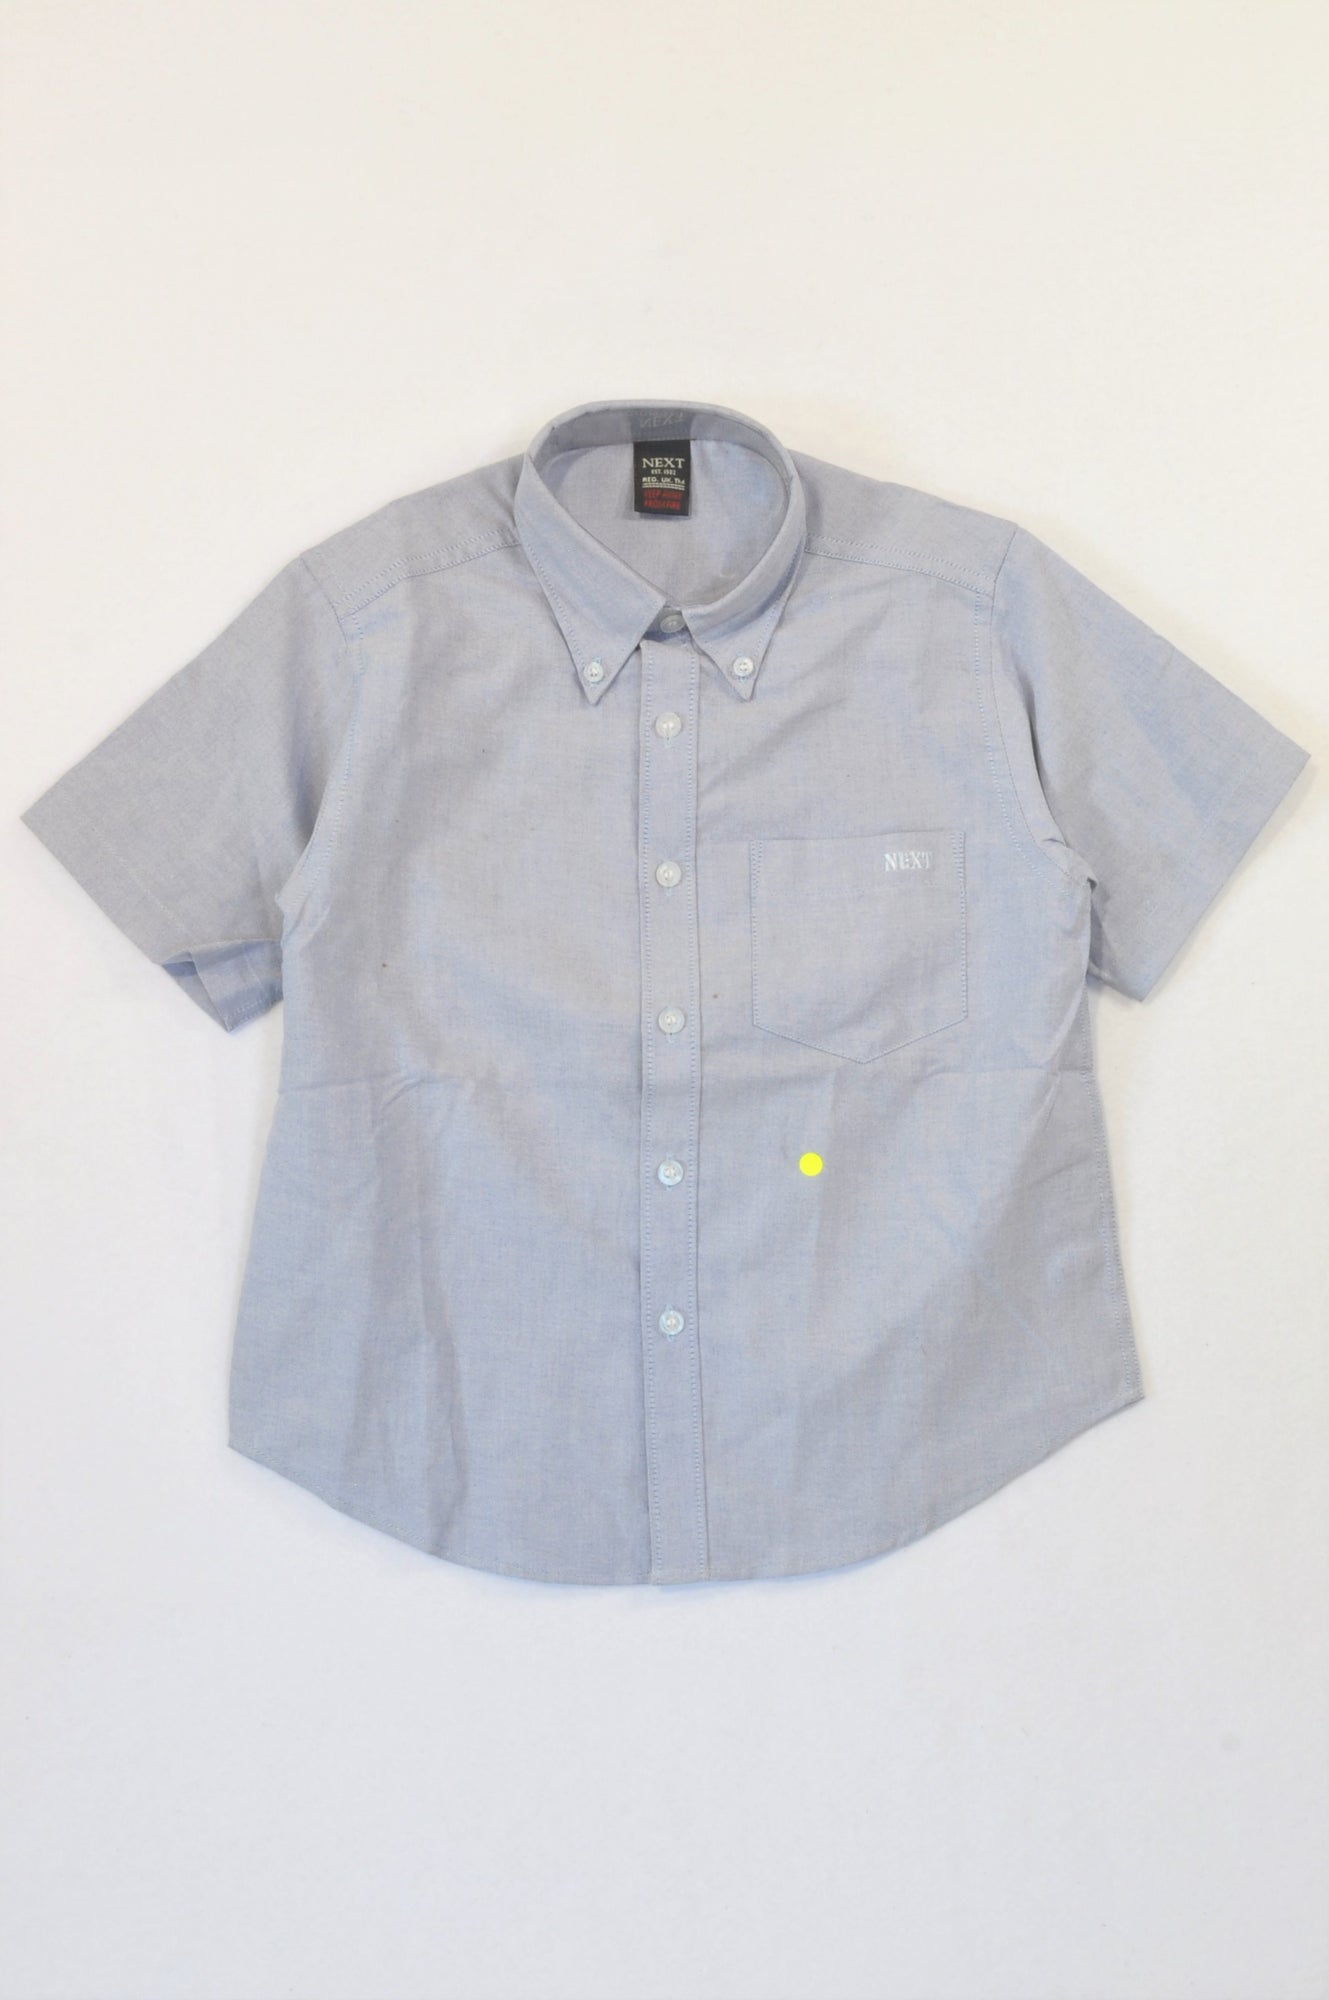 New Next Light Blue Button Collared Shirt Boys 6-7 years